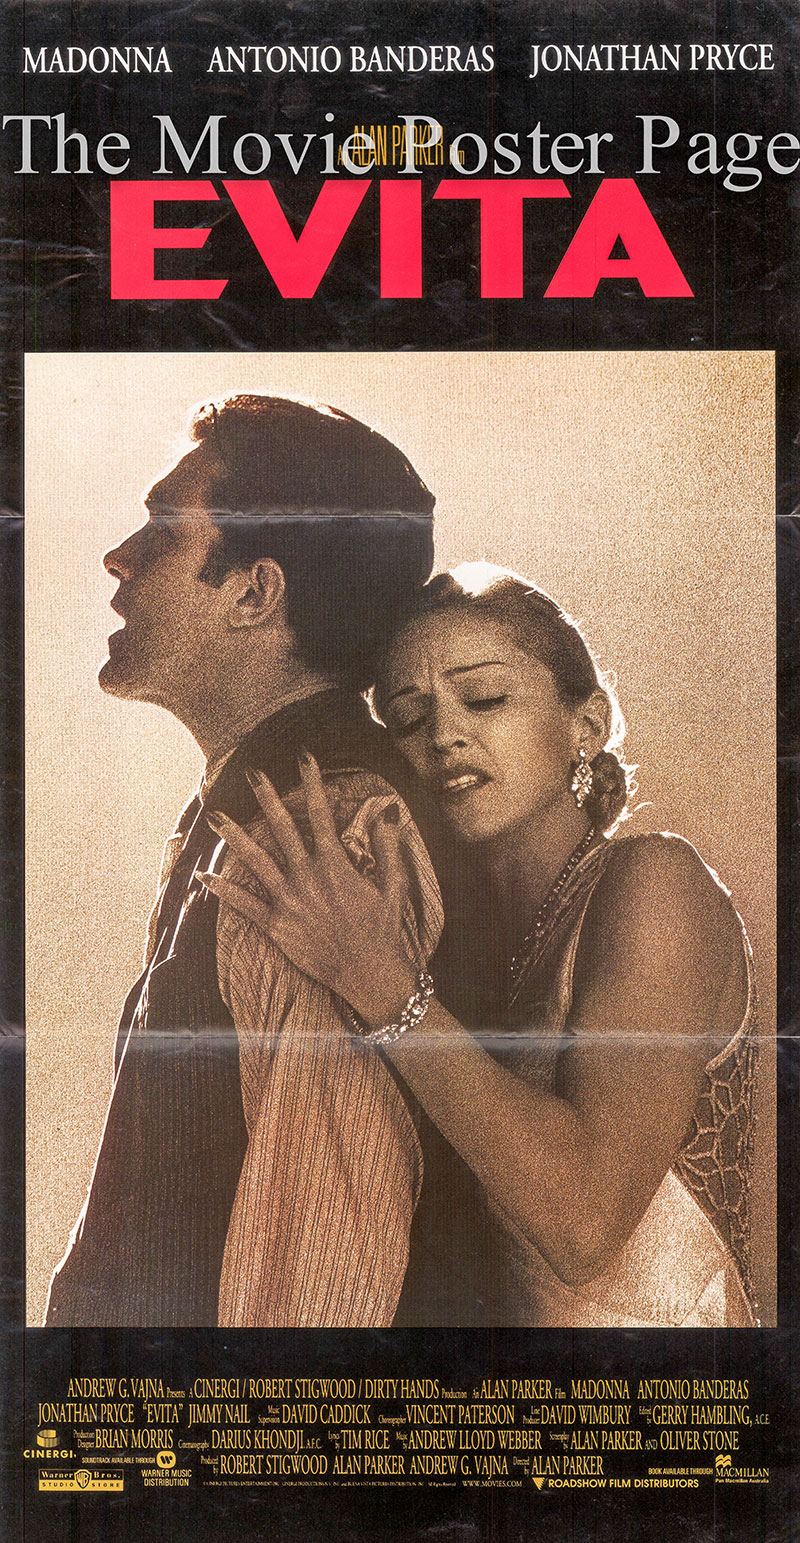 Pictured is a Australia day bill poster for the 1996 Alan Parker film Evita starring Madonna as Eva Peron.